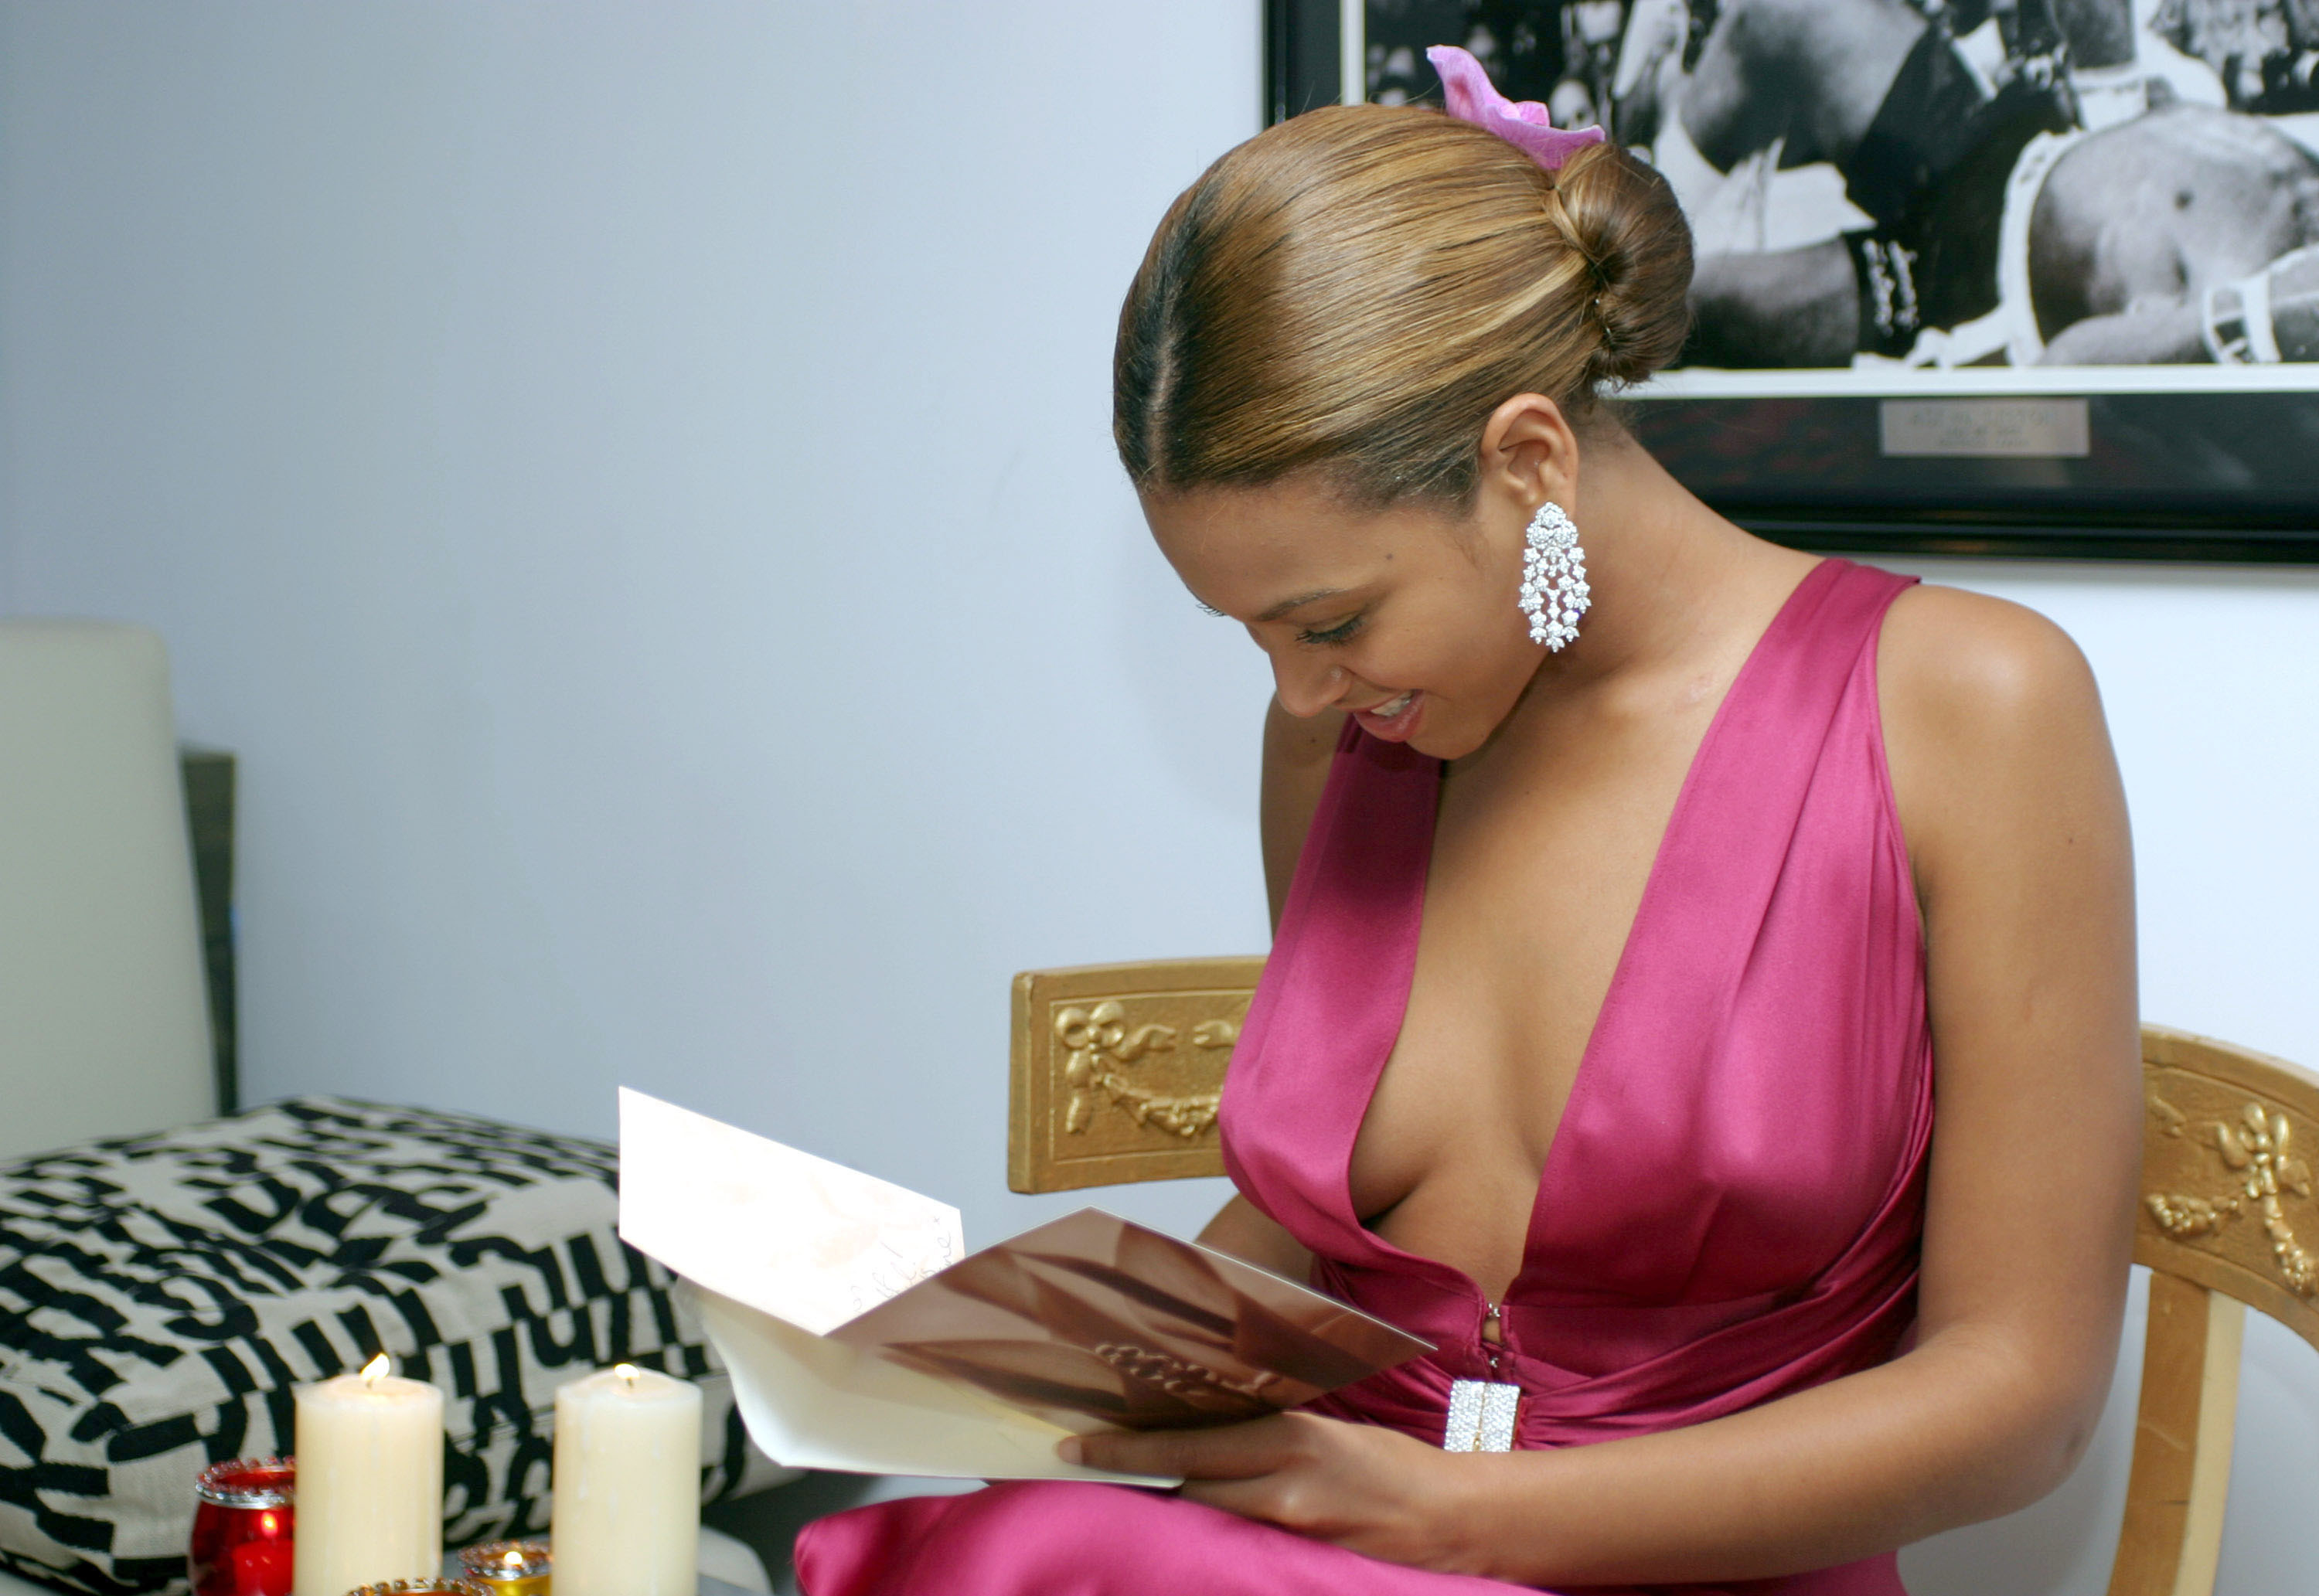 Beyonce reads a birthday card in a pink dress